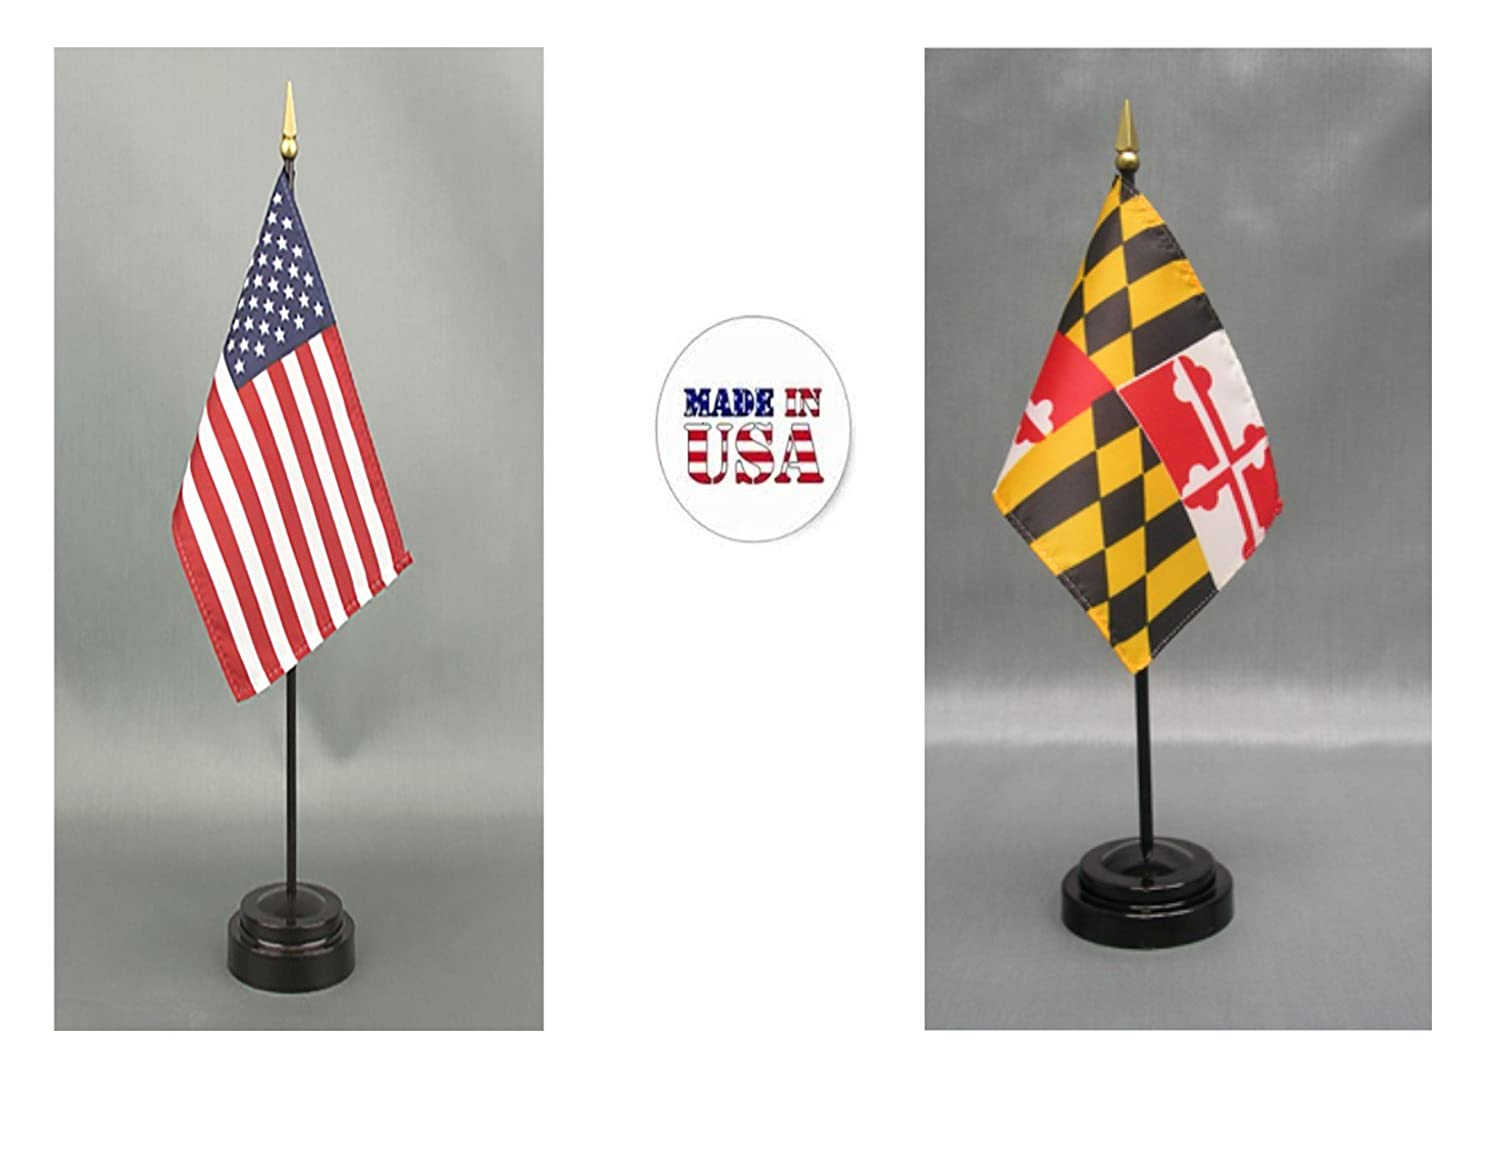 Includes 2 Flag Stands /& 2 Small Mini Stick Flags 1 American and 1 Maryland 4x6 Miniature Desk /& Table Flag Made in The USA